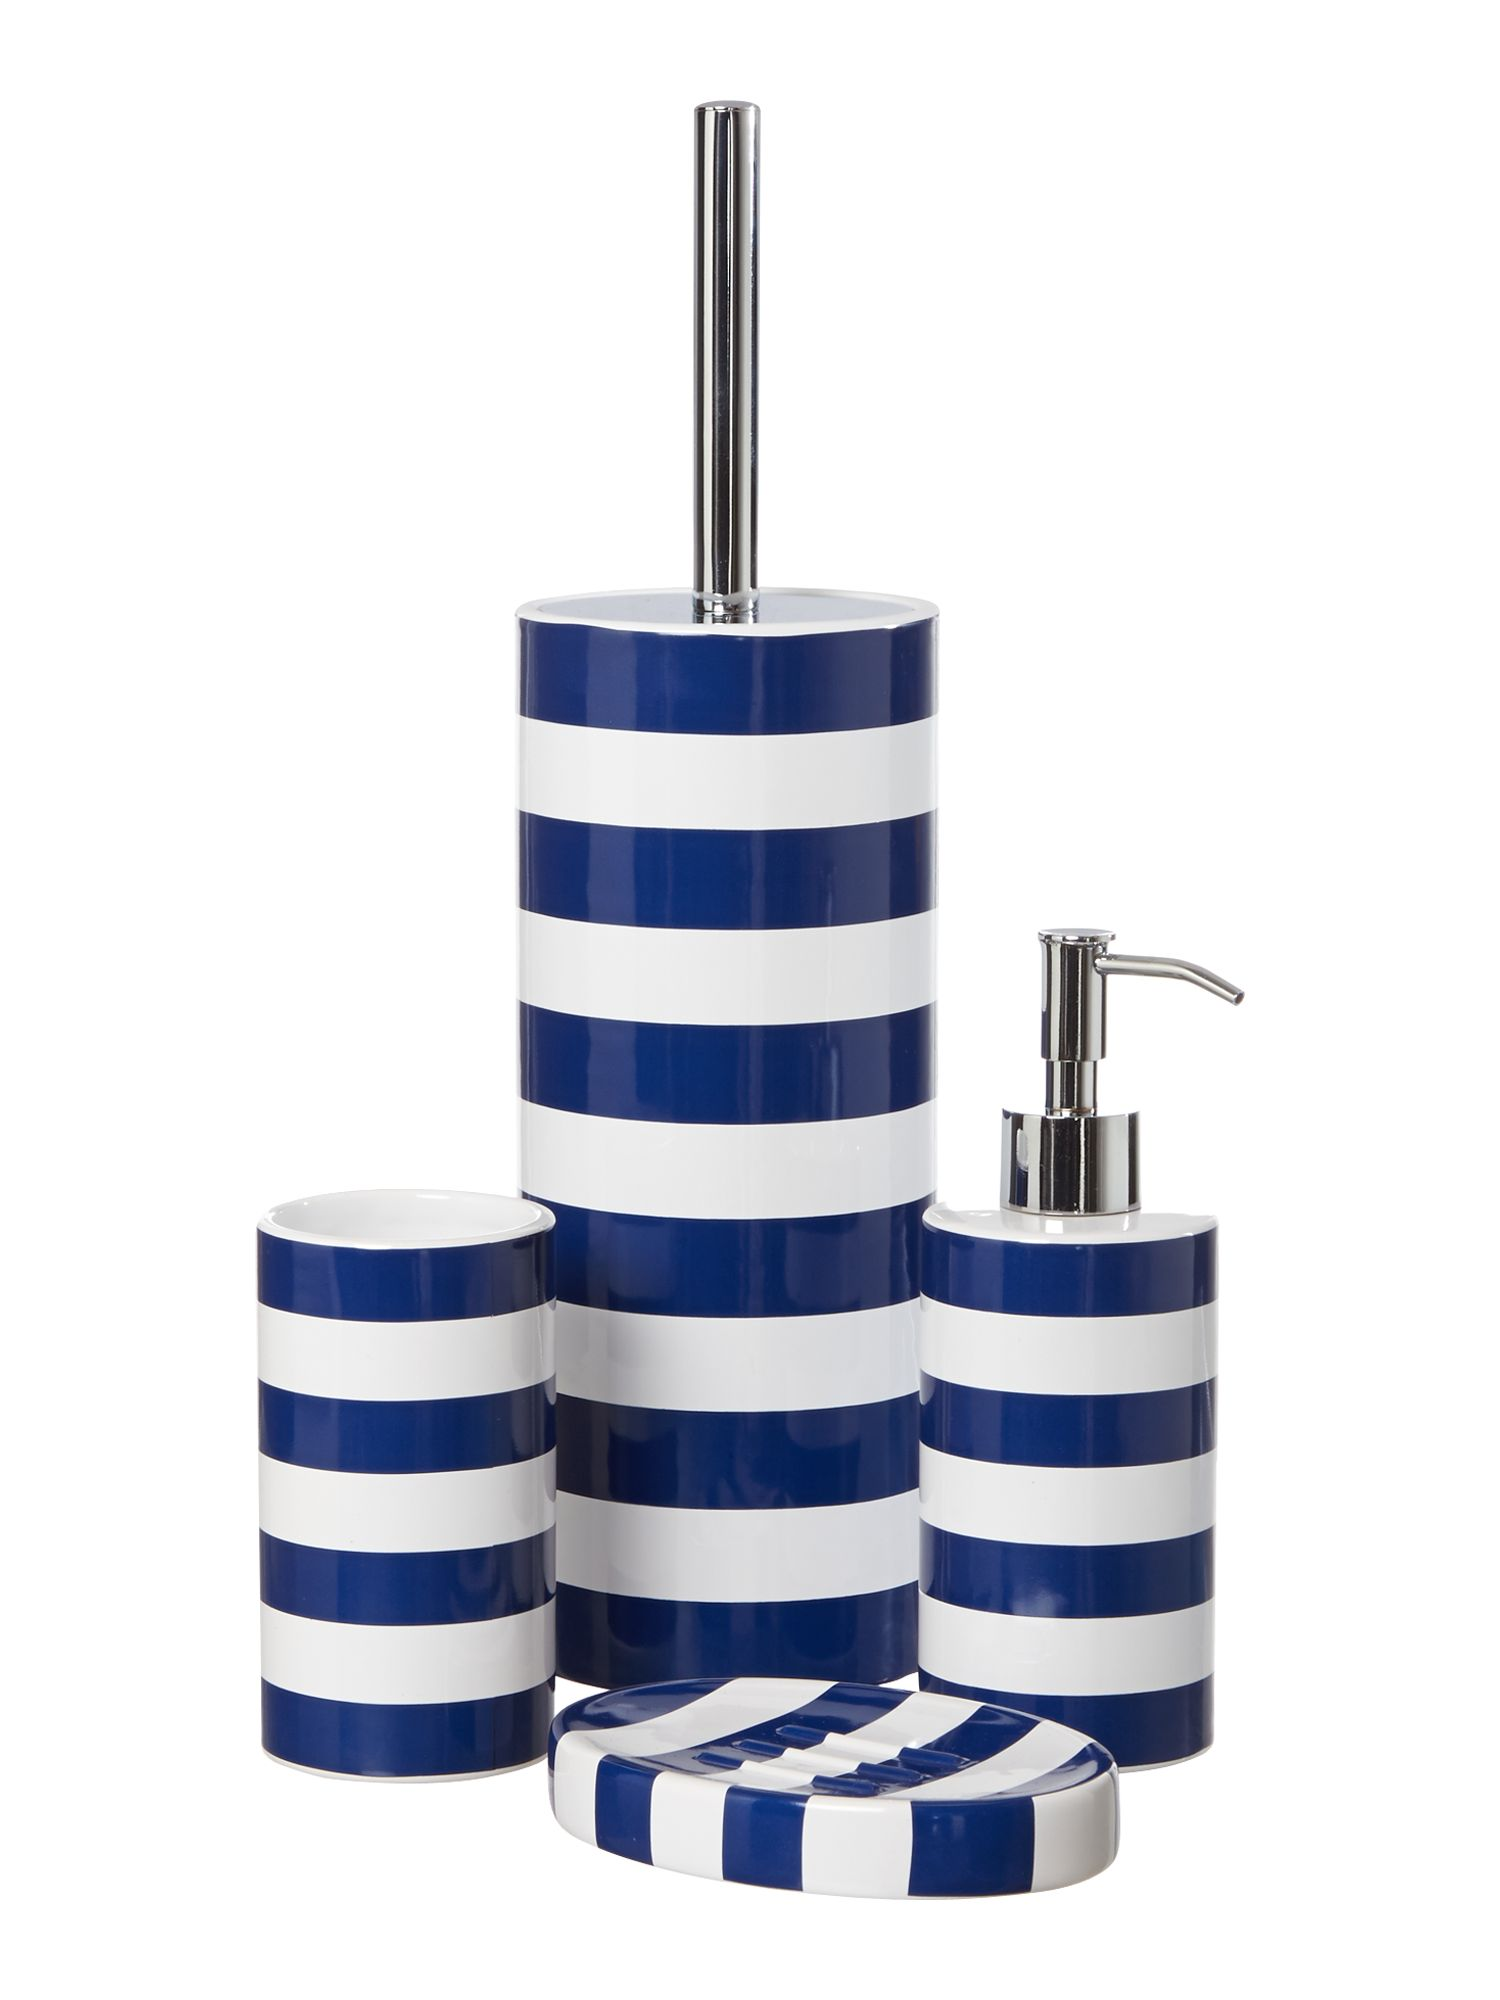 Nautical basin accessories